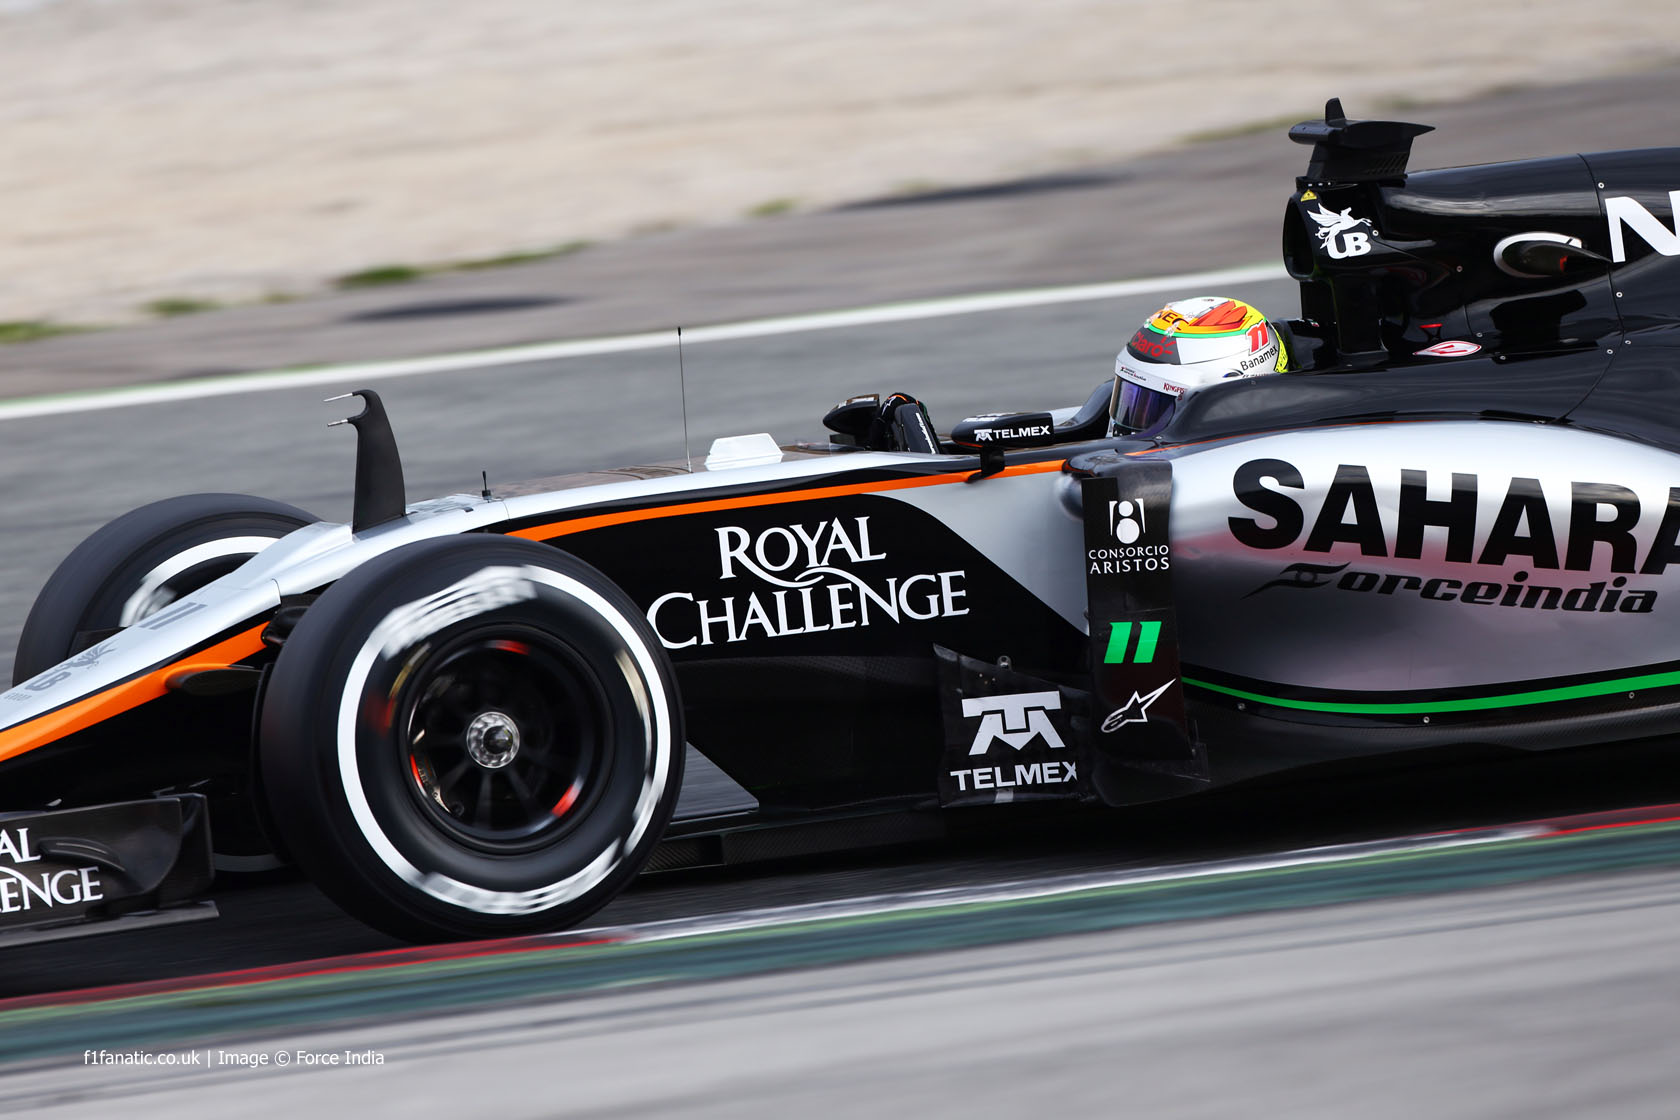 Equipe Force India de Formula 1 - f1fanatic.co.uk